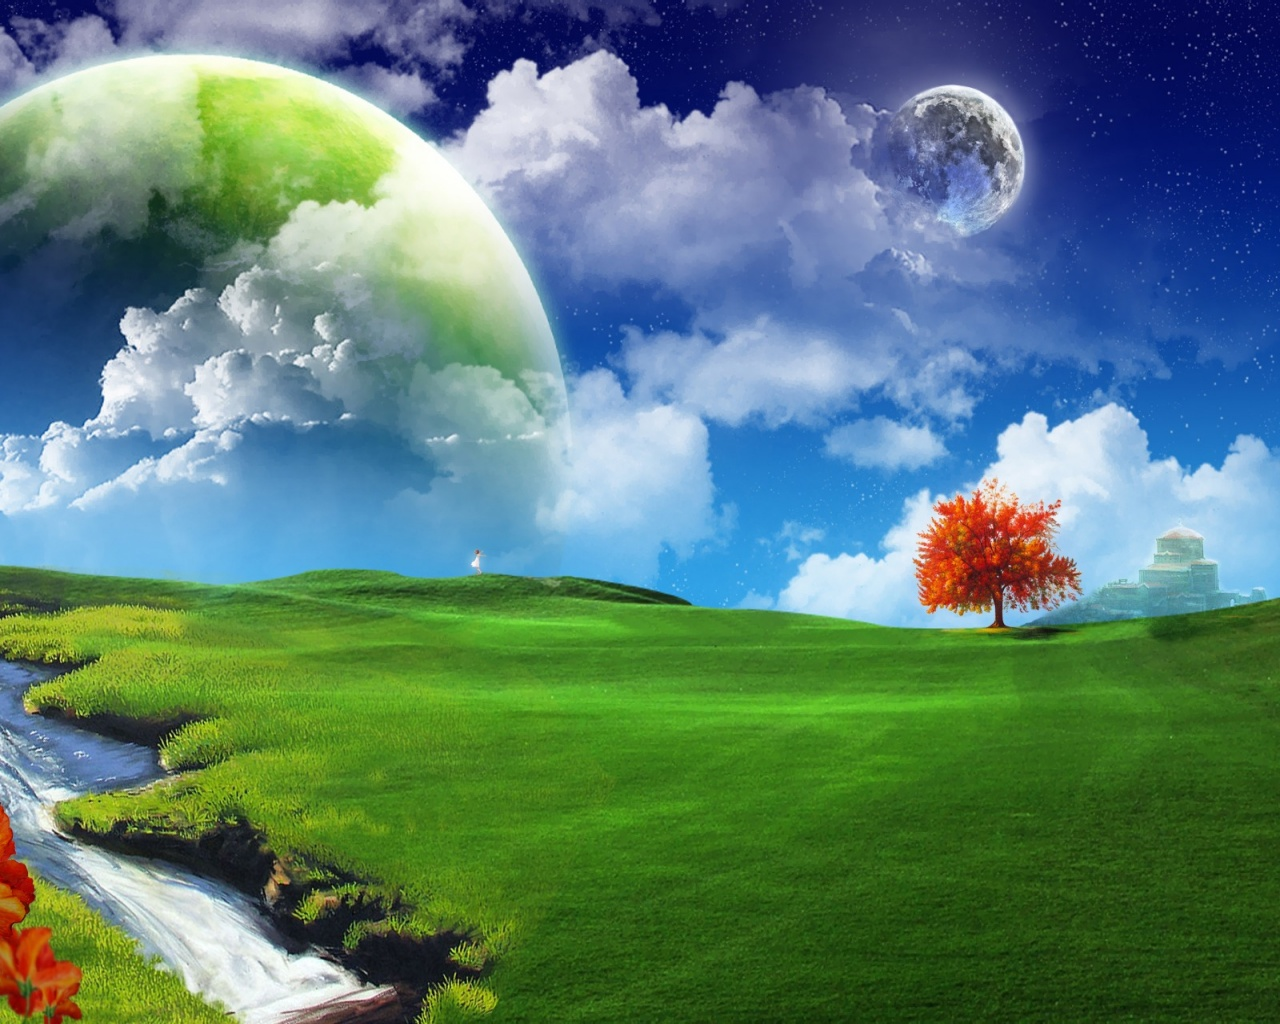 abstract-fantasy-land-wallpapers-1280-1024